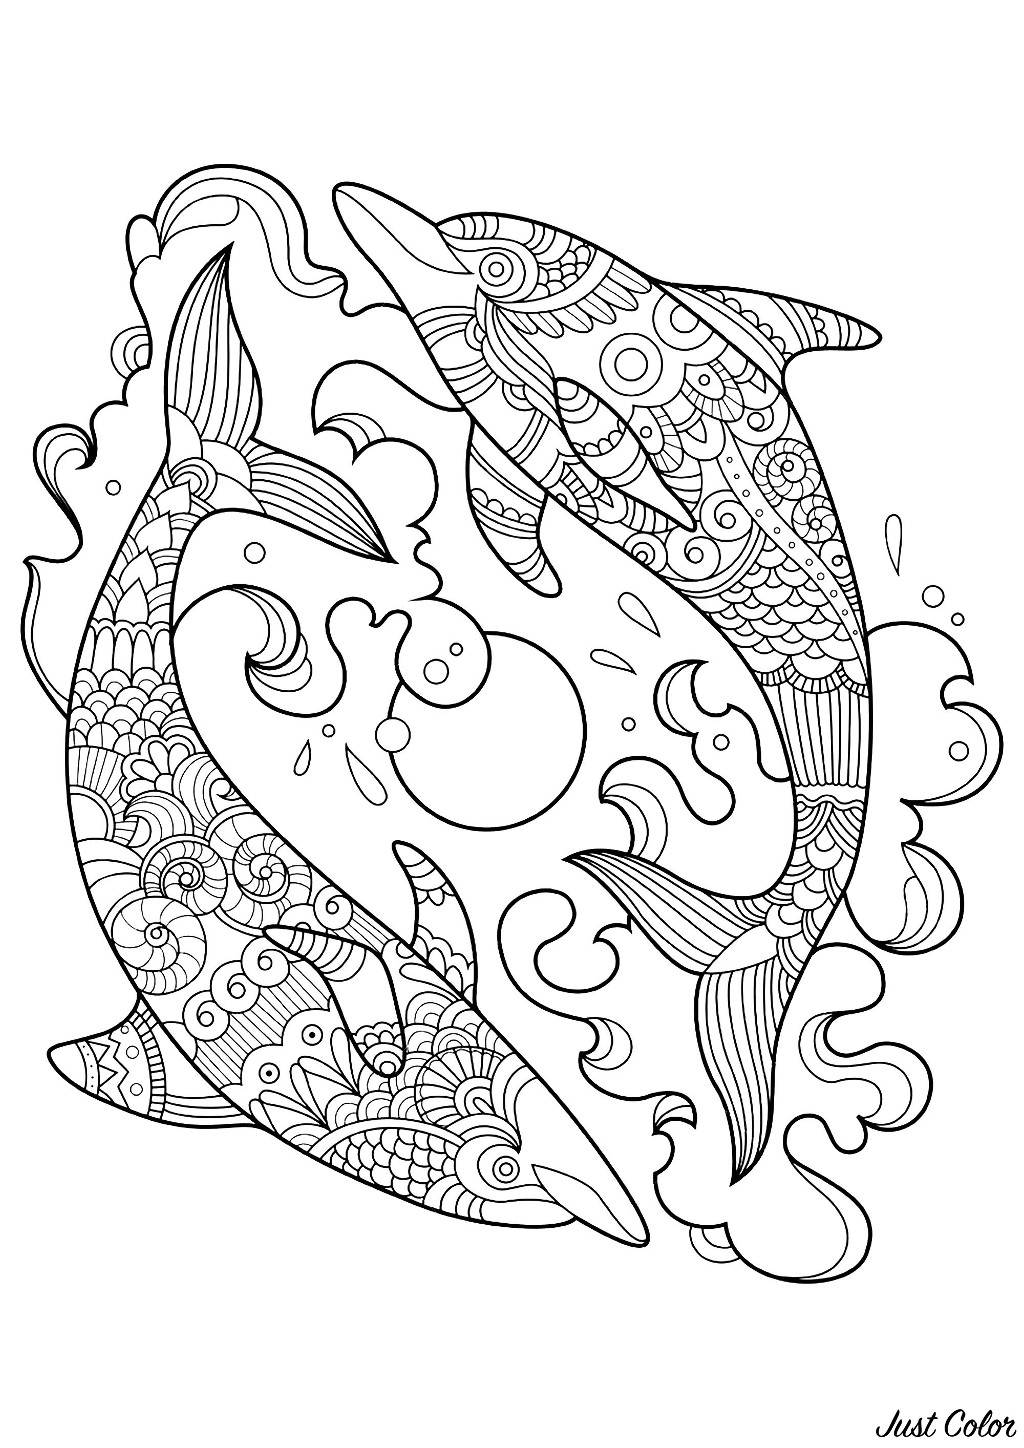 dolphins to color for children dolphins kids coloring pages. Black Bedroom Furniture Sets. Home Design Ideas